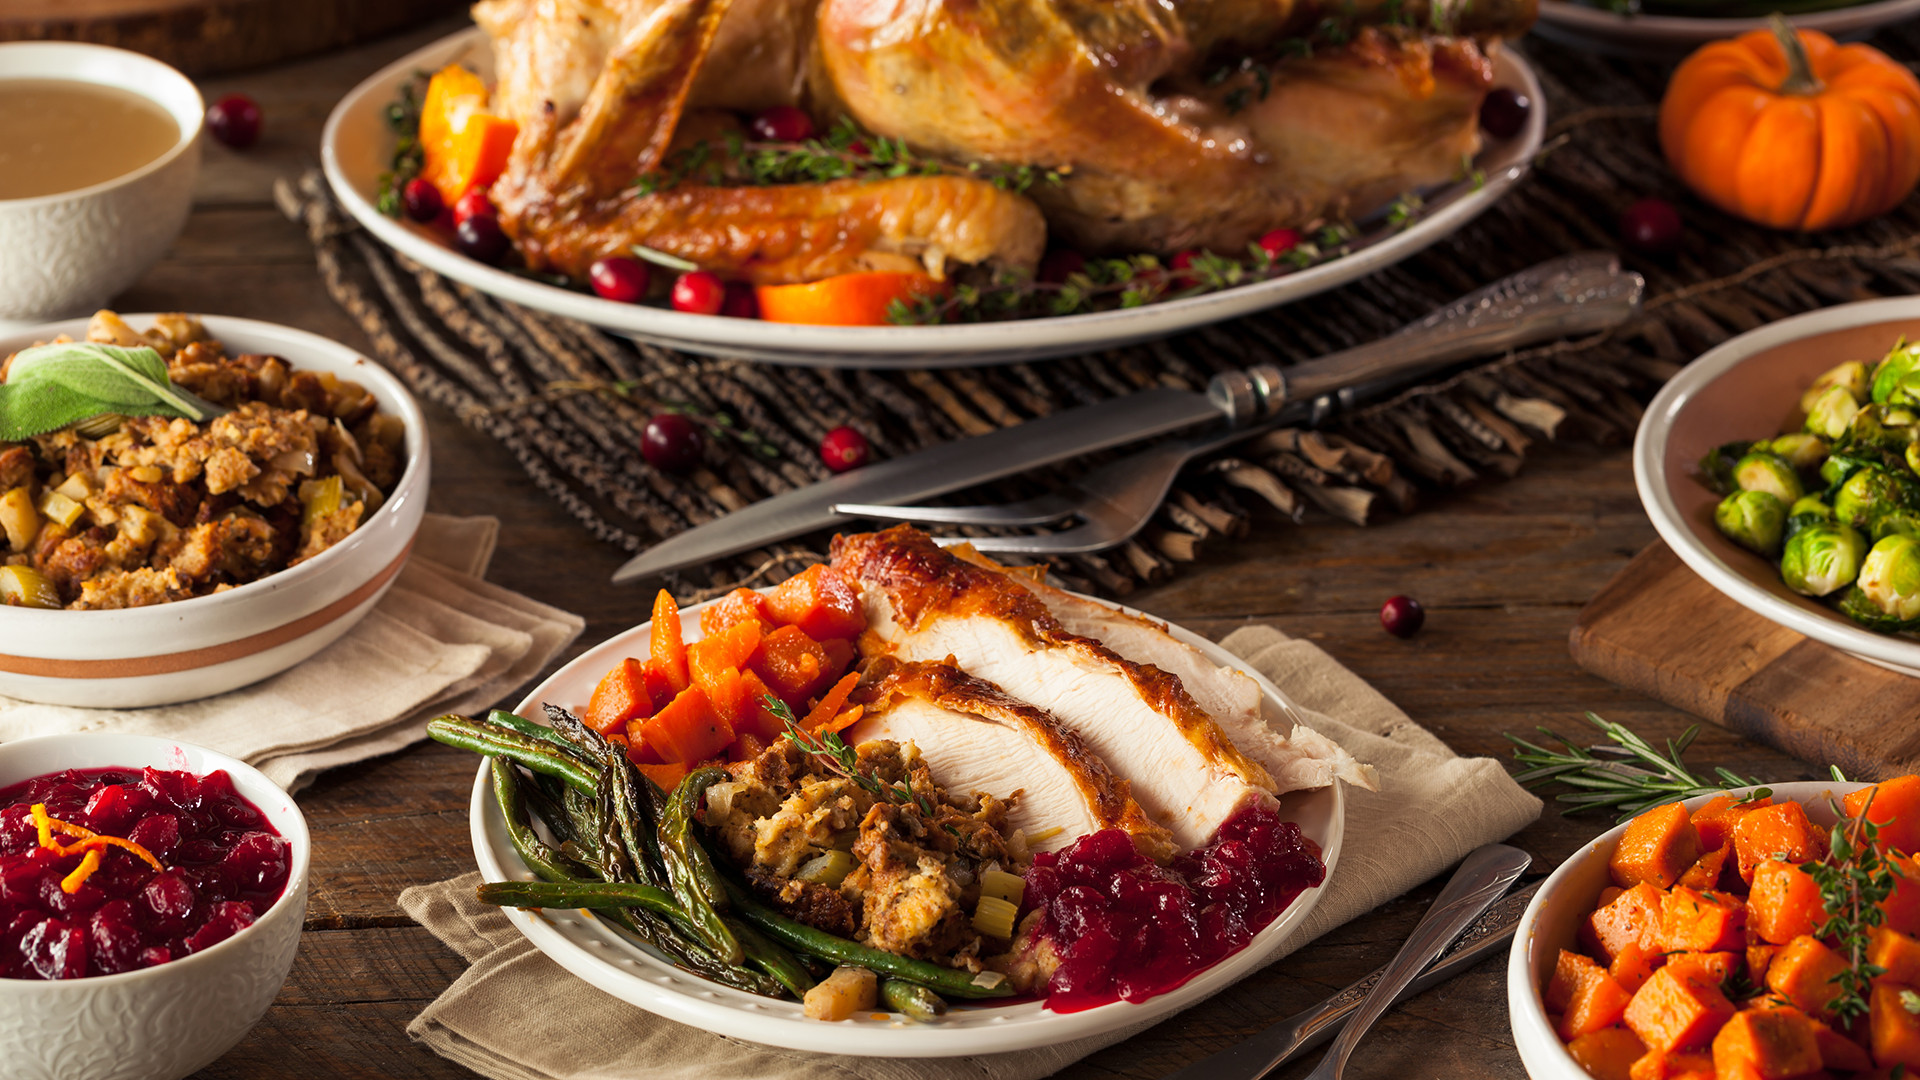 Food 4 Less Thanksgiving Dinners  The Marilyn Denis Show Food Cooking Recipes